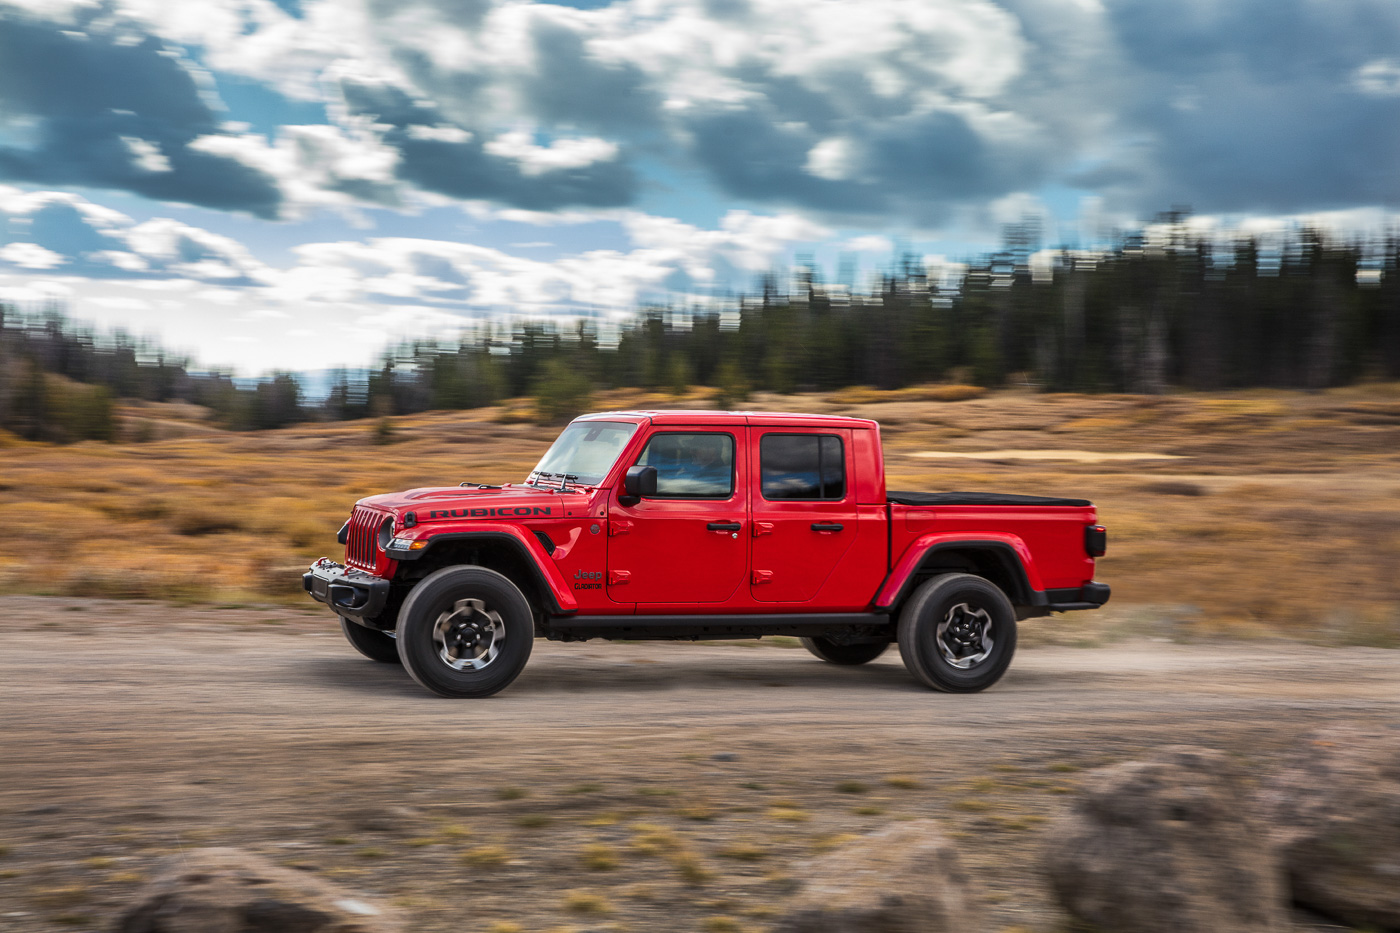 Jeep-Gladiator-Rubicon-92.jpg